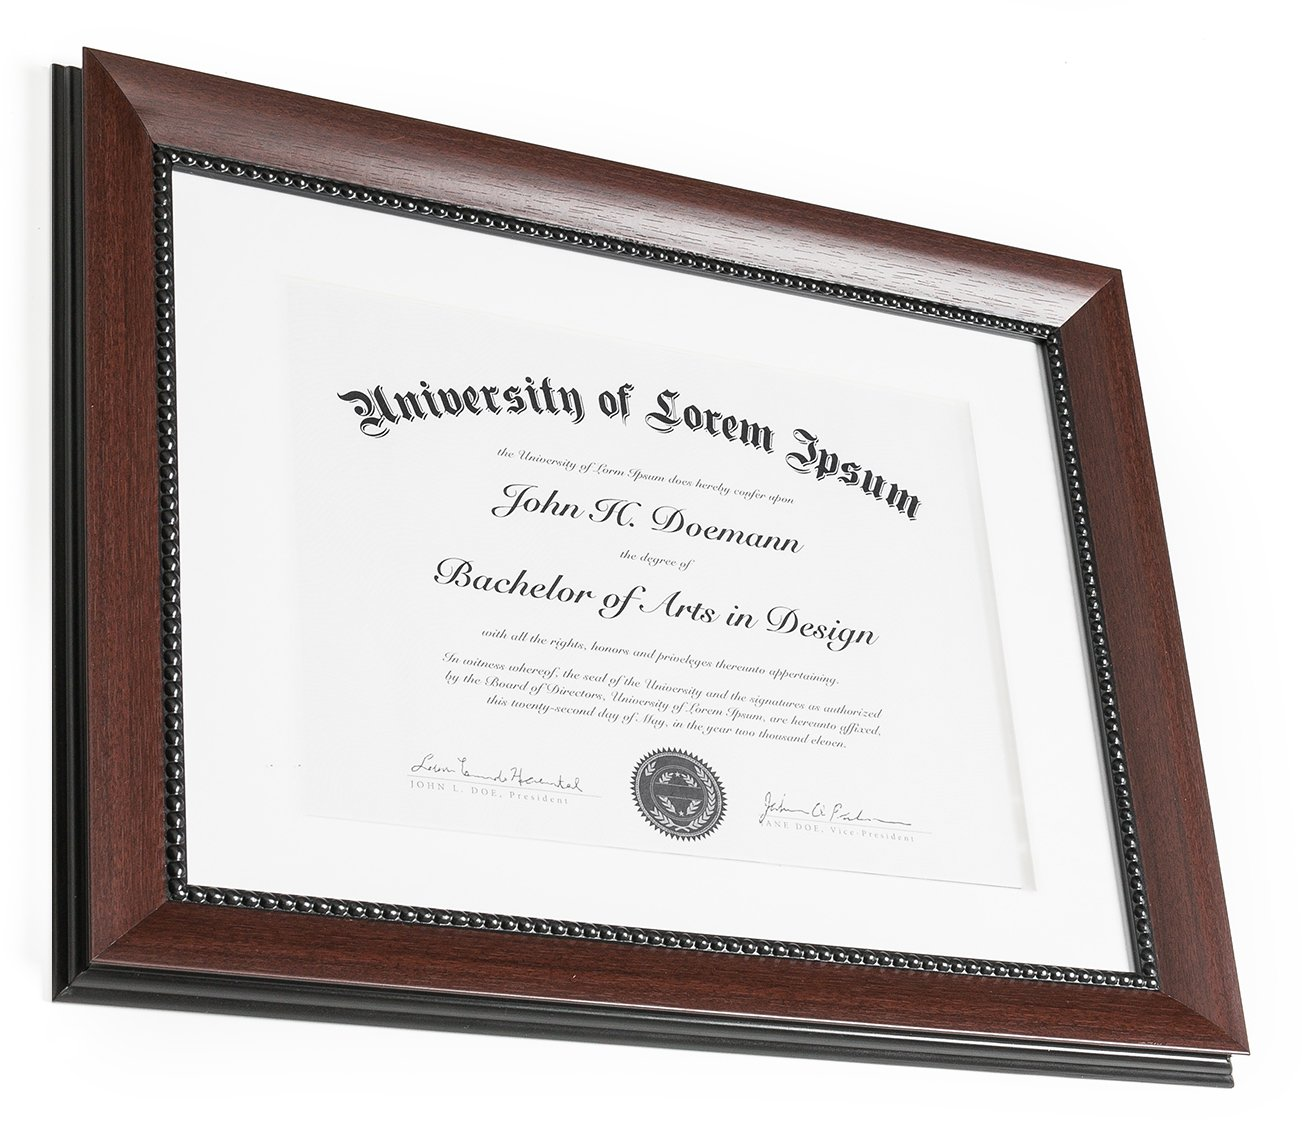 11x14 Mahogany Document Frame - Made to Display Certificates 8.5x11 ...